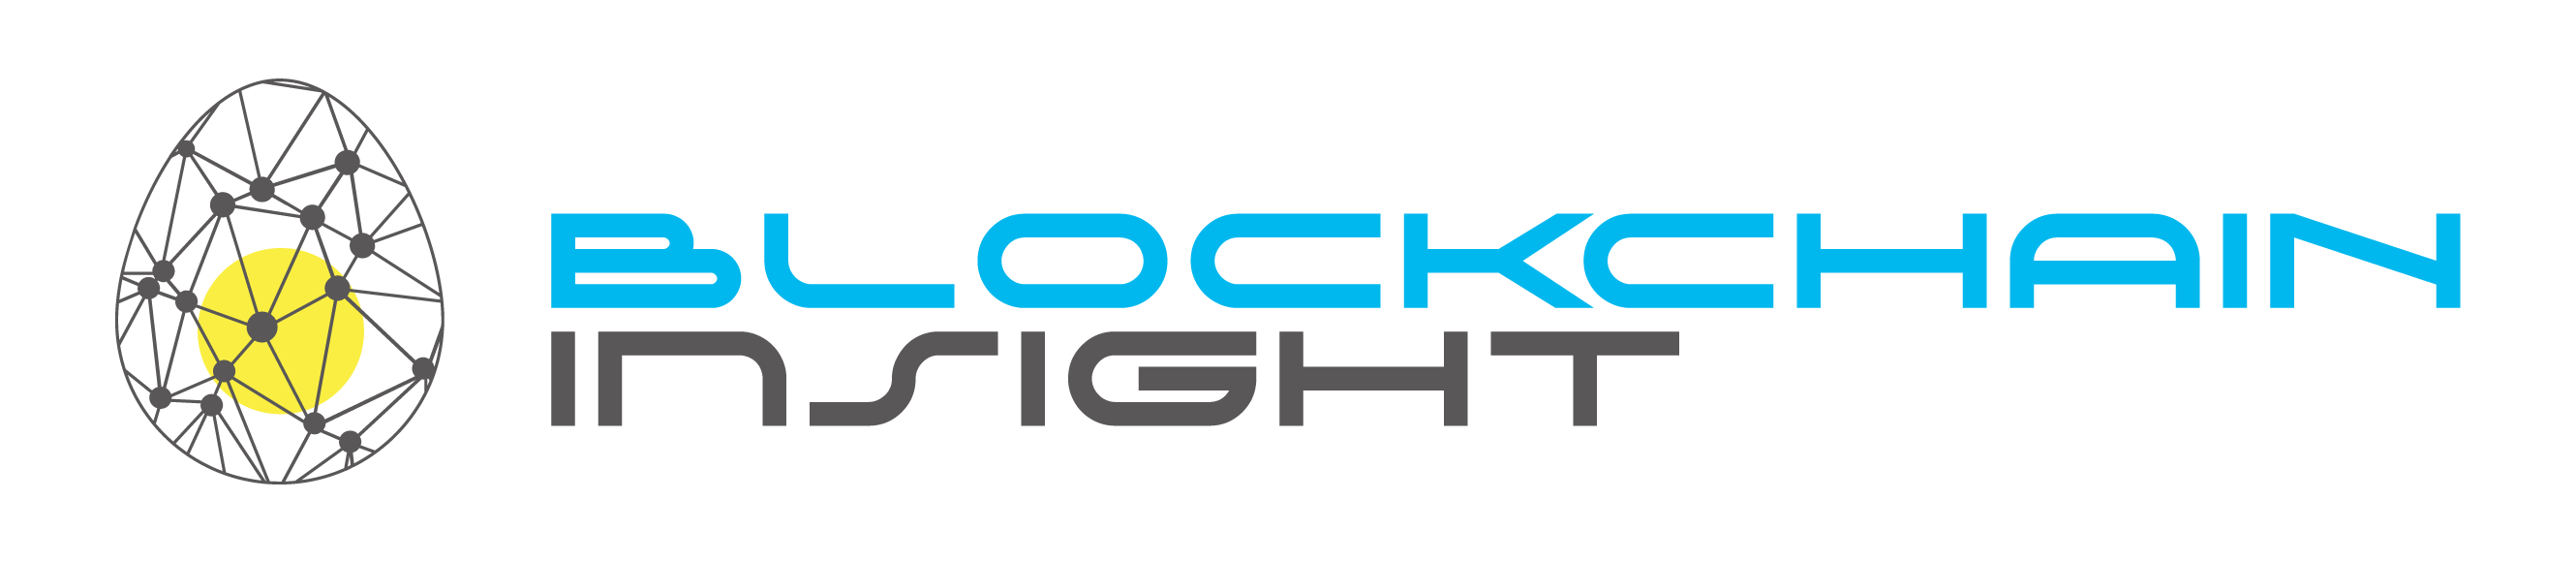 190816 blockchain insight inc logo